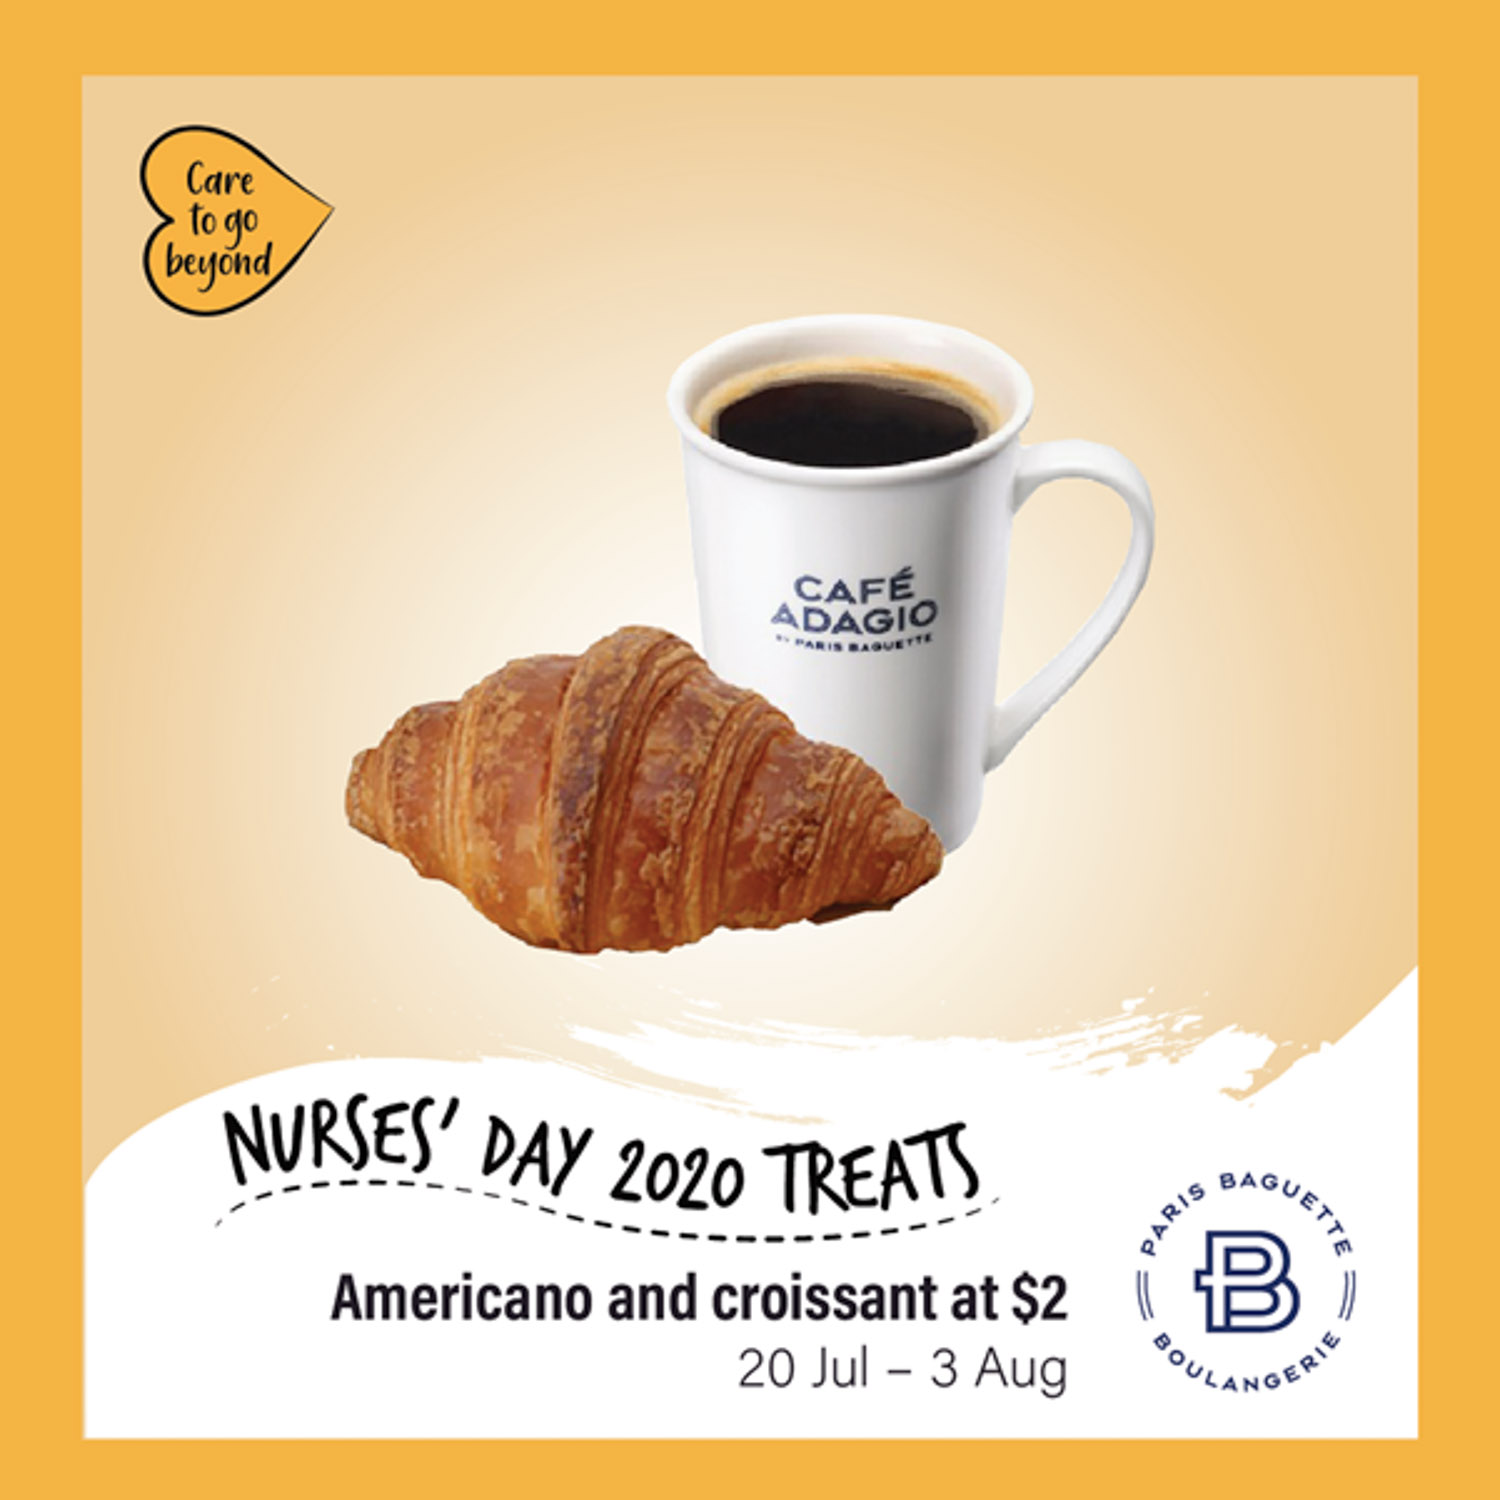 Paris Baguette 5-for-5 - nurses day $2 croissant set